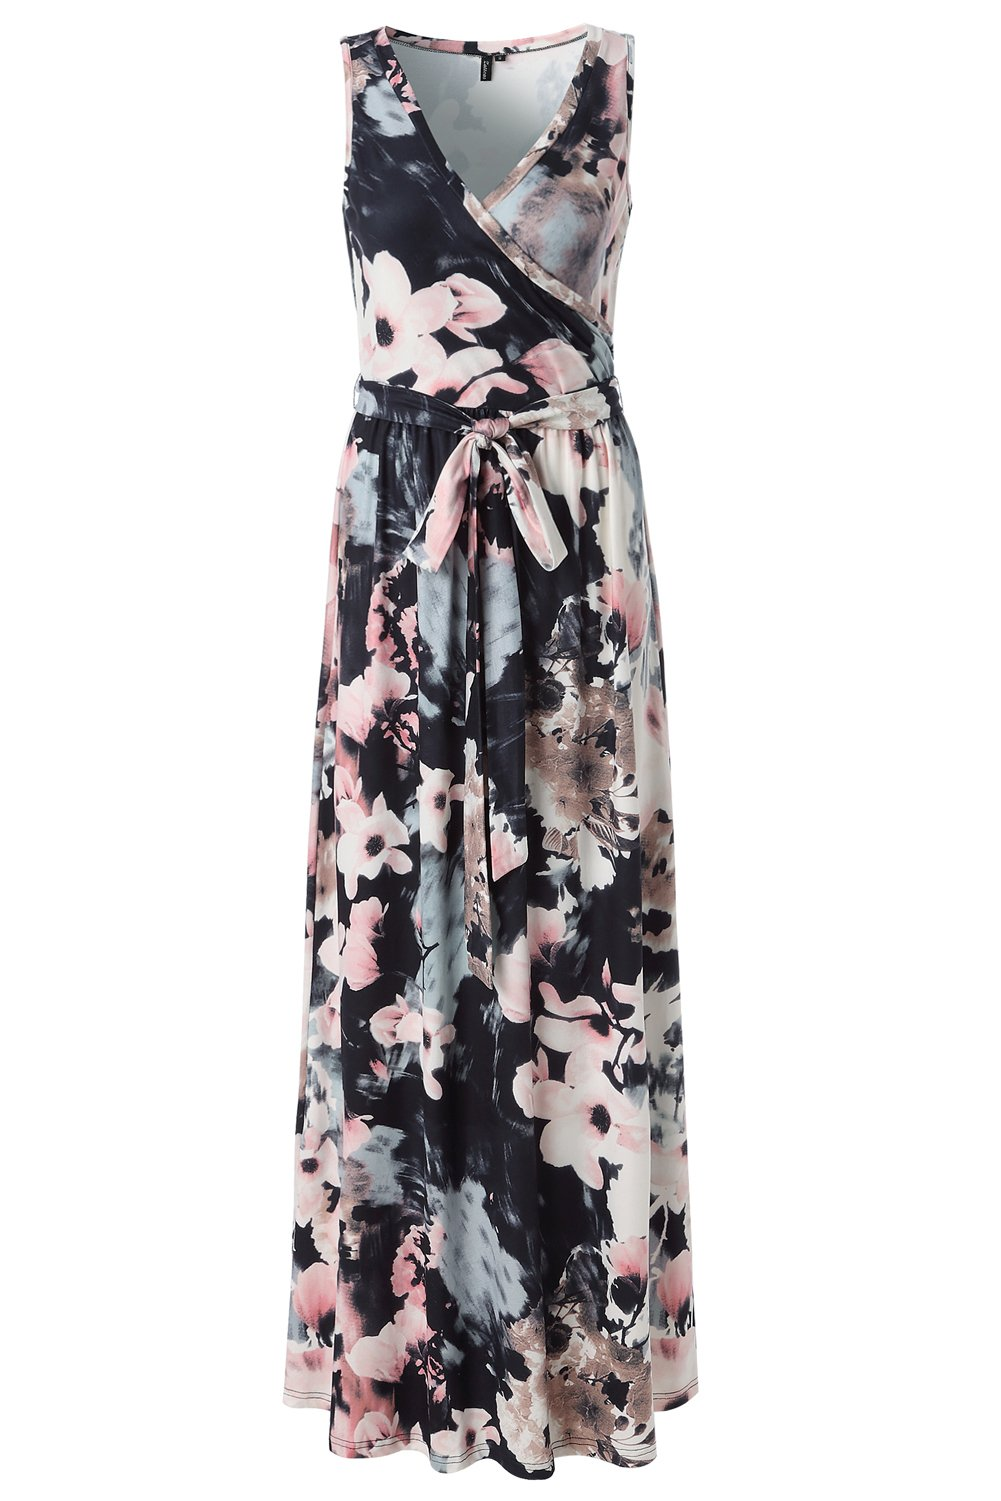 Zattcas Womens Bohemian Printed Wrap Bodice Sleeveless Crossover Maxi Dress …